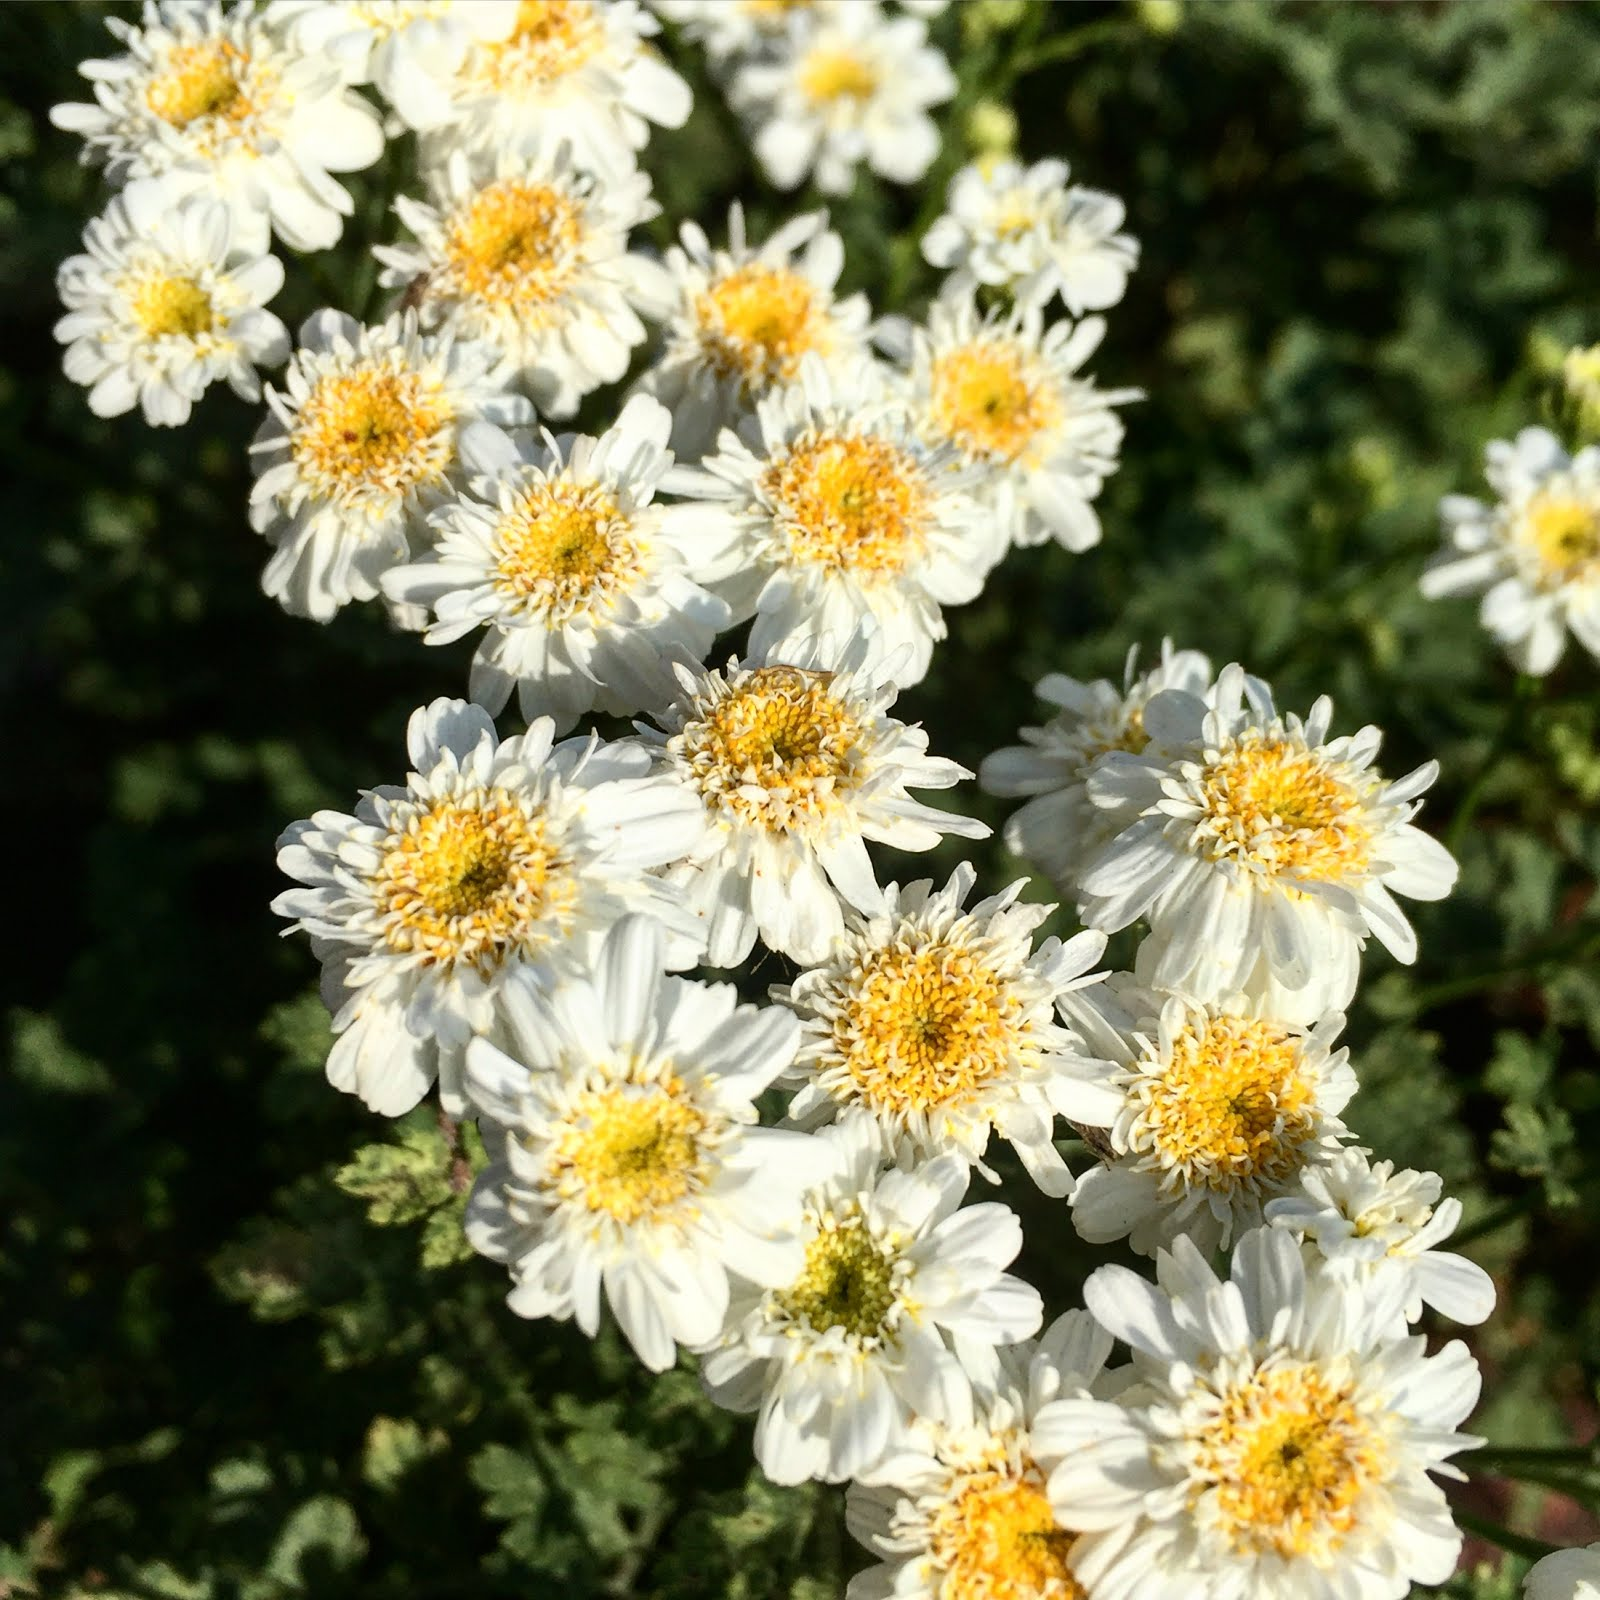 Aprilles socal gardening double feverfew tanacetum parthenium is a perennial herb that has been used as a fever reducer and headache remedy it has single daisy flowers and i izmirmasajfo Image collections